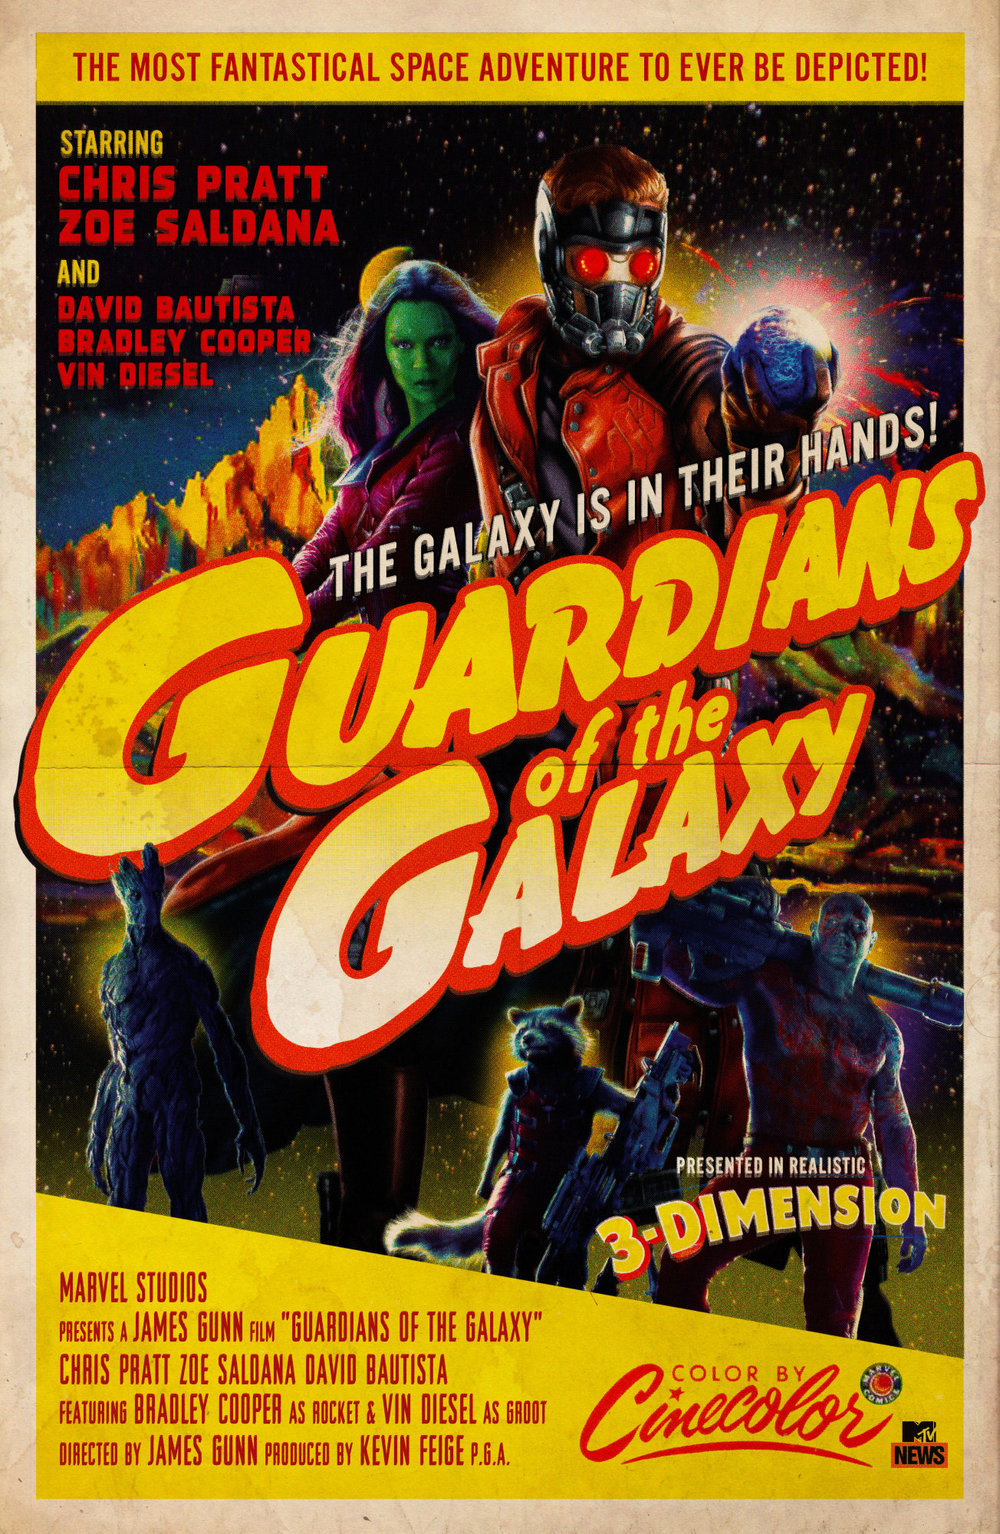 MTV imagines what the poster for Guardians of the Galaxy would look like if it came out in the 1950s.